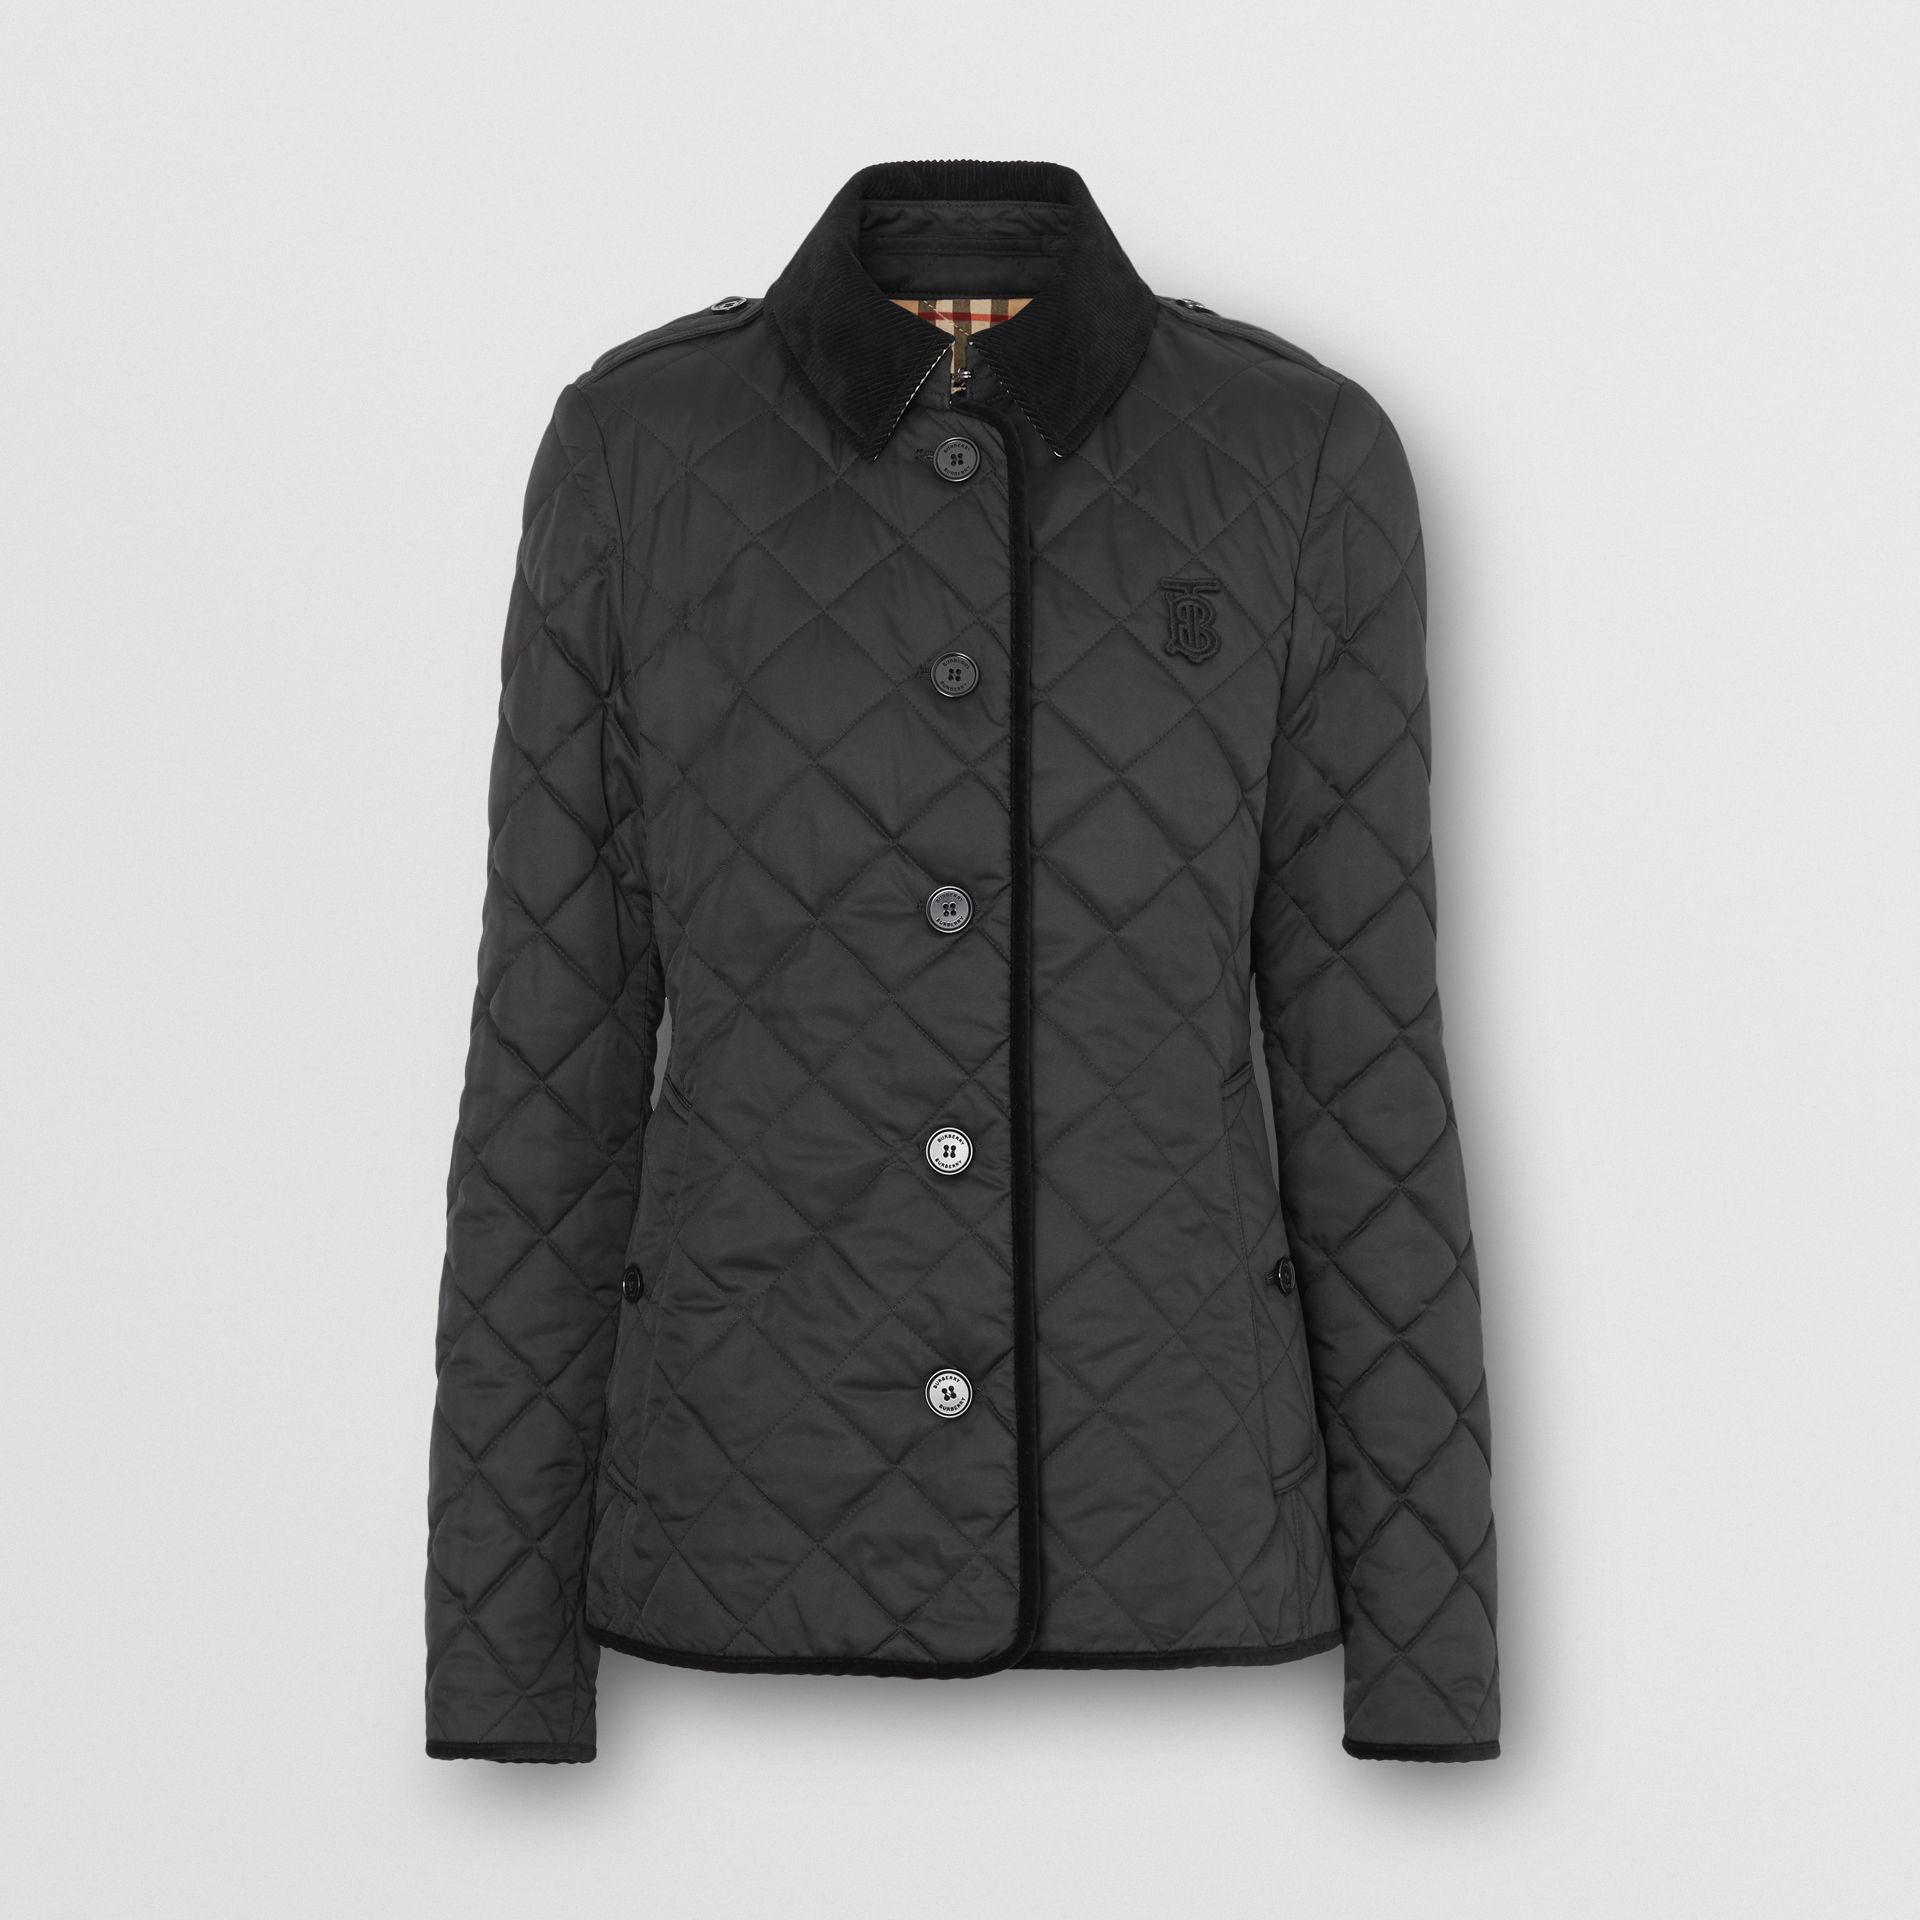 Monogram Motif Diamond Quilted Jacket in Black - Women | Burberry Singapore - gallery image 3